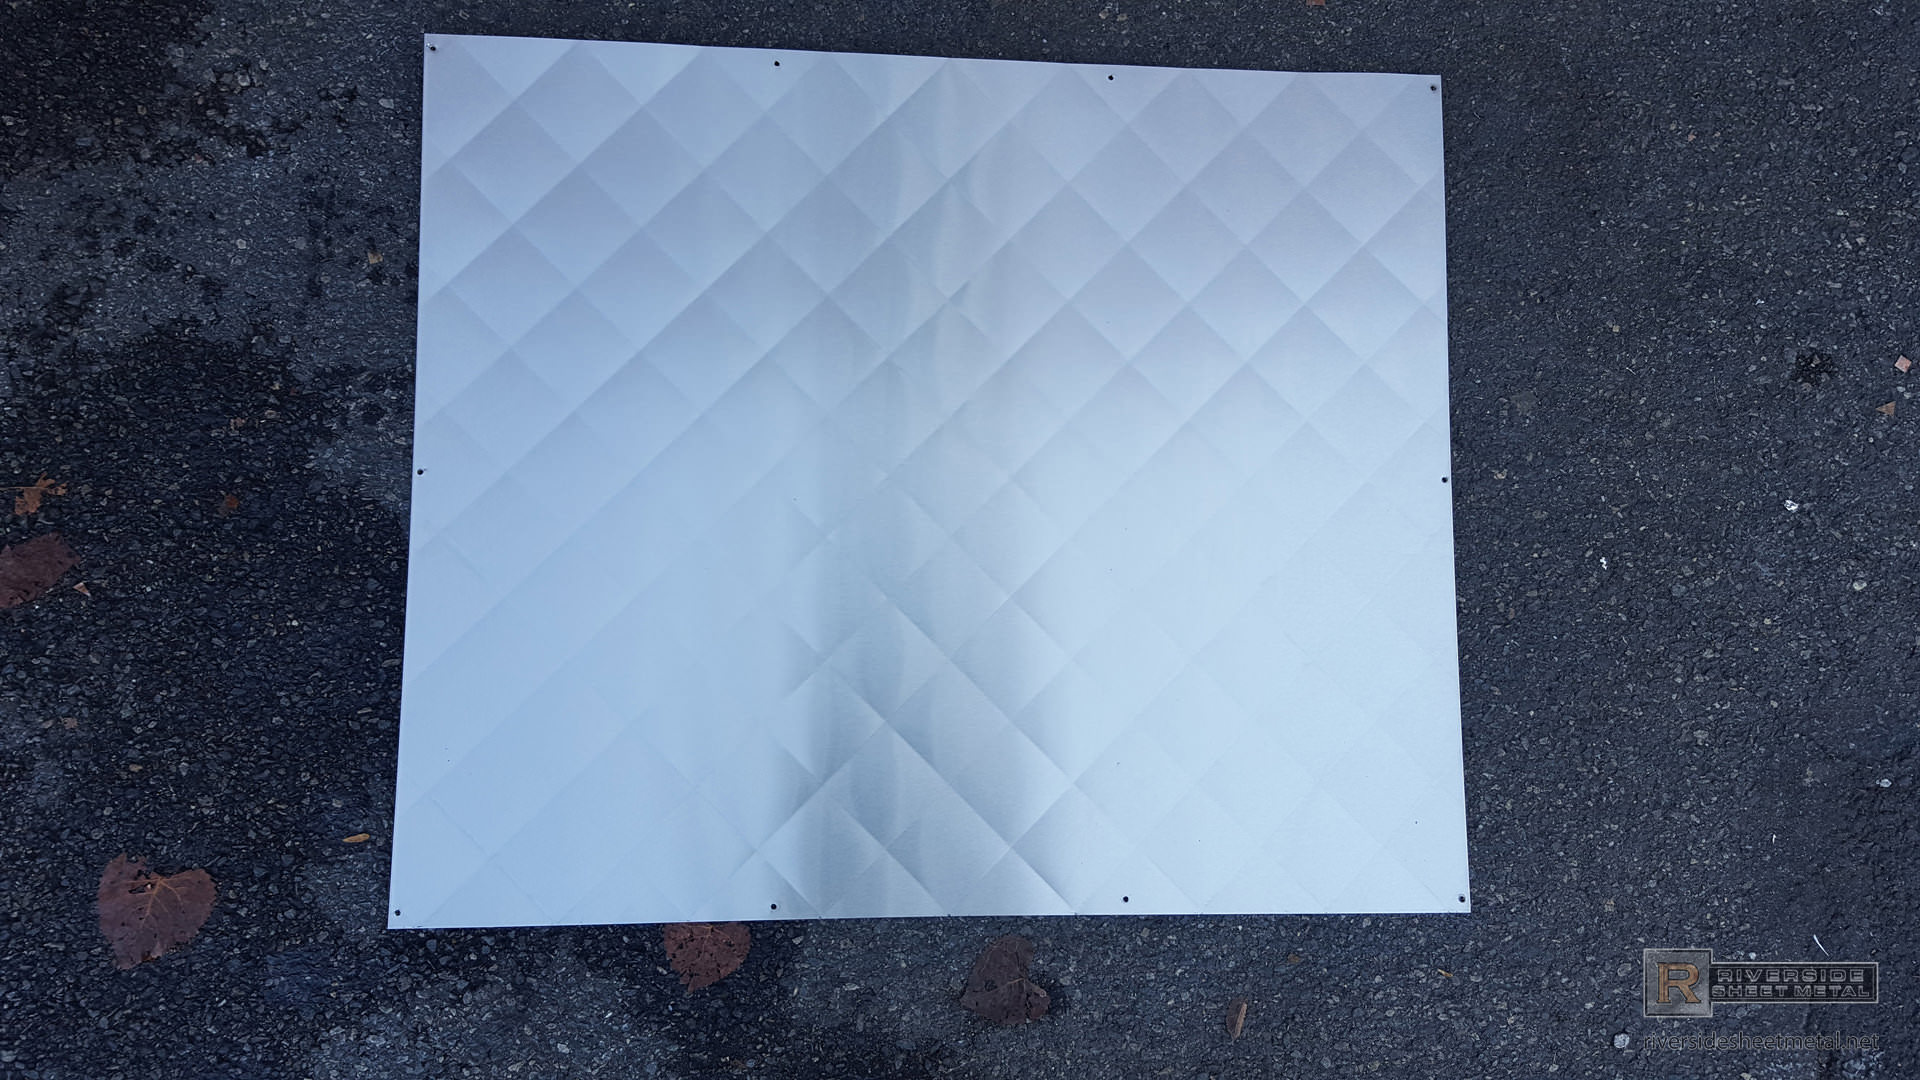 Quilted - Diamond pattern quilted stainless steel backsplash